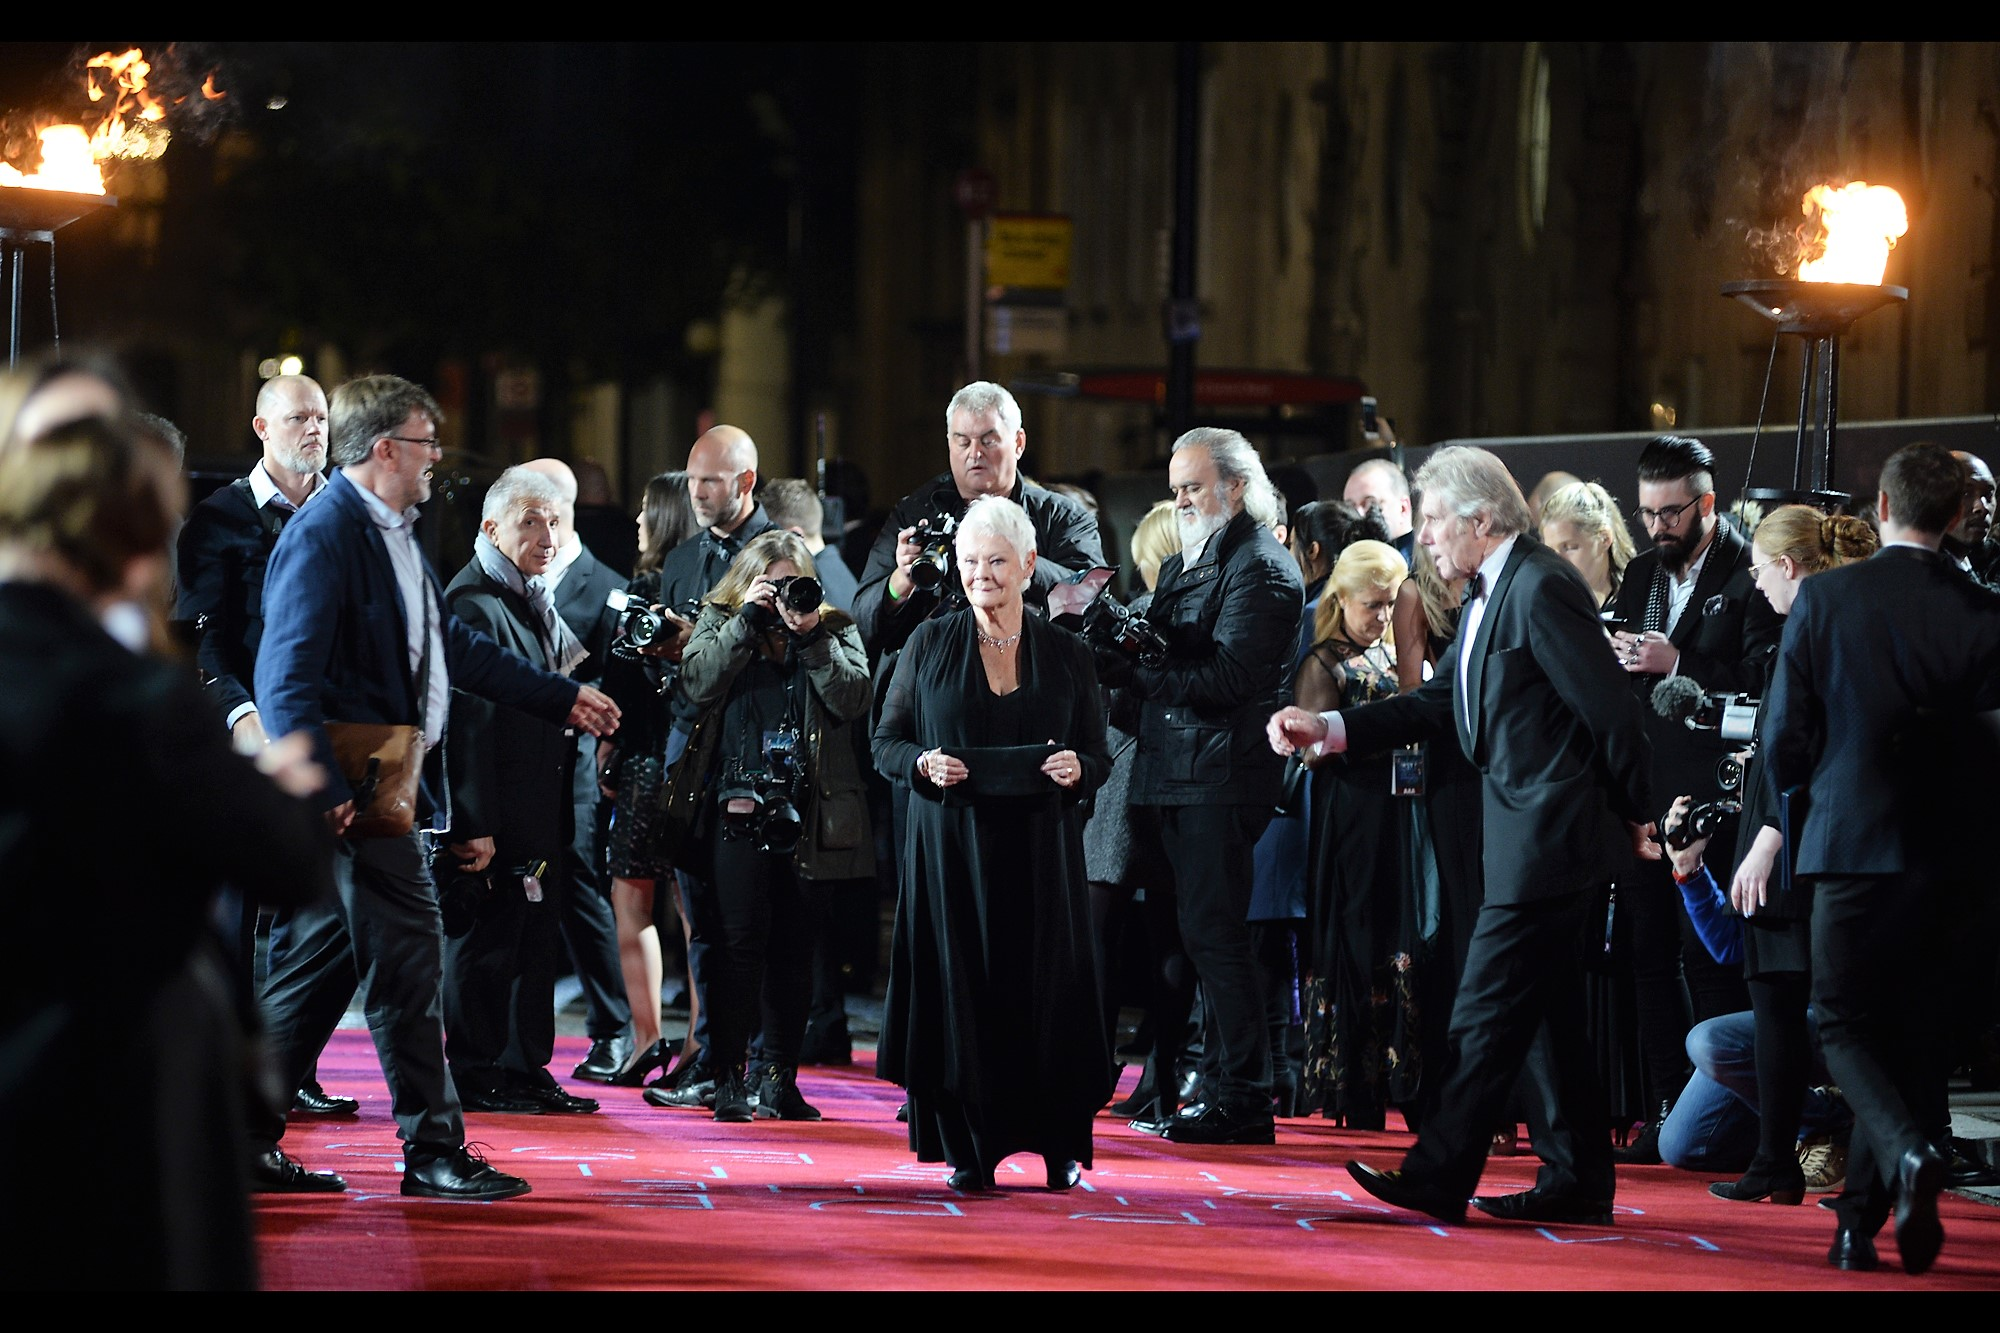 """You cleared the carpet so I could sprint maniacally along it in a zig-zag pattern with gleeful abandon? I'm touched... but I might just walk if that's okay""  - Dame Judi Dench is in this movie, and one of the two James Bond movies that also had their premieres at the Royal Albert Hall (  Skyfall  )"